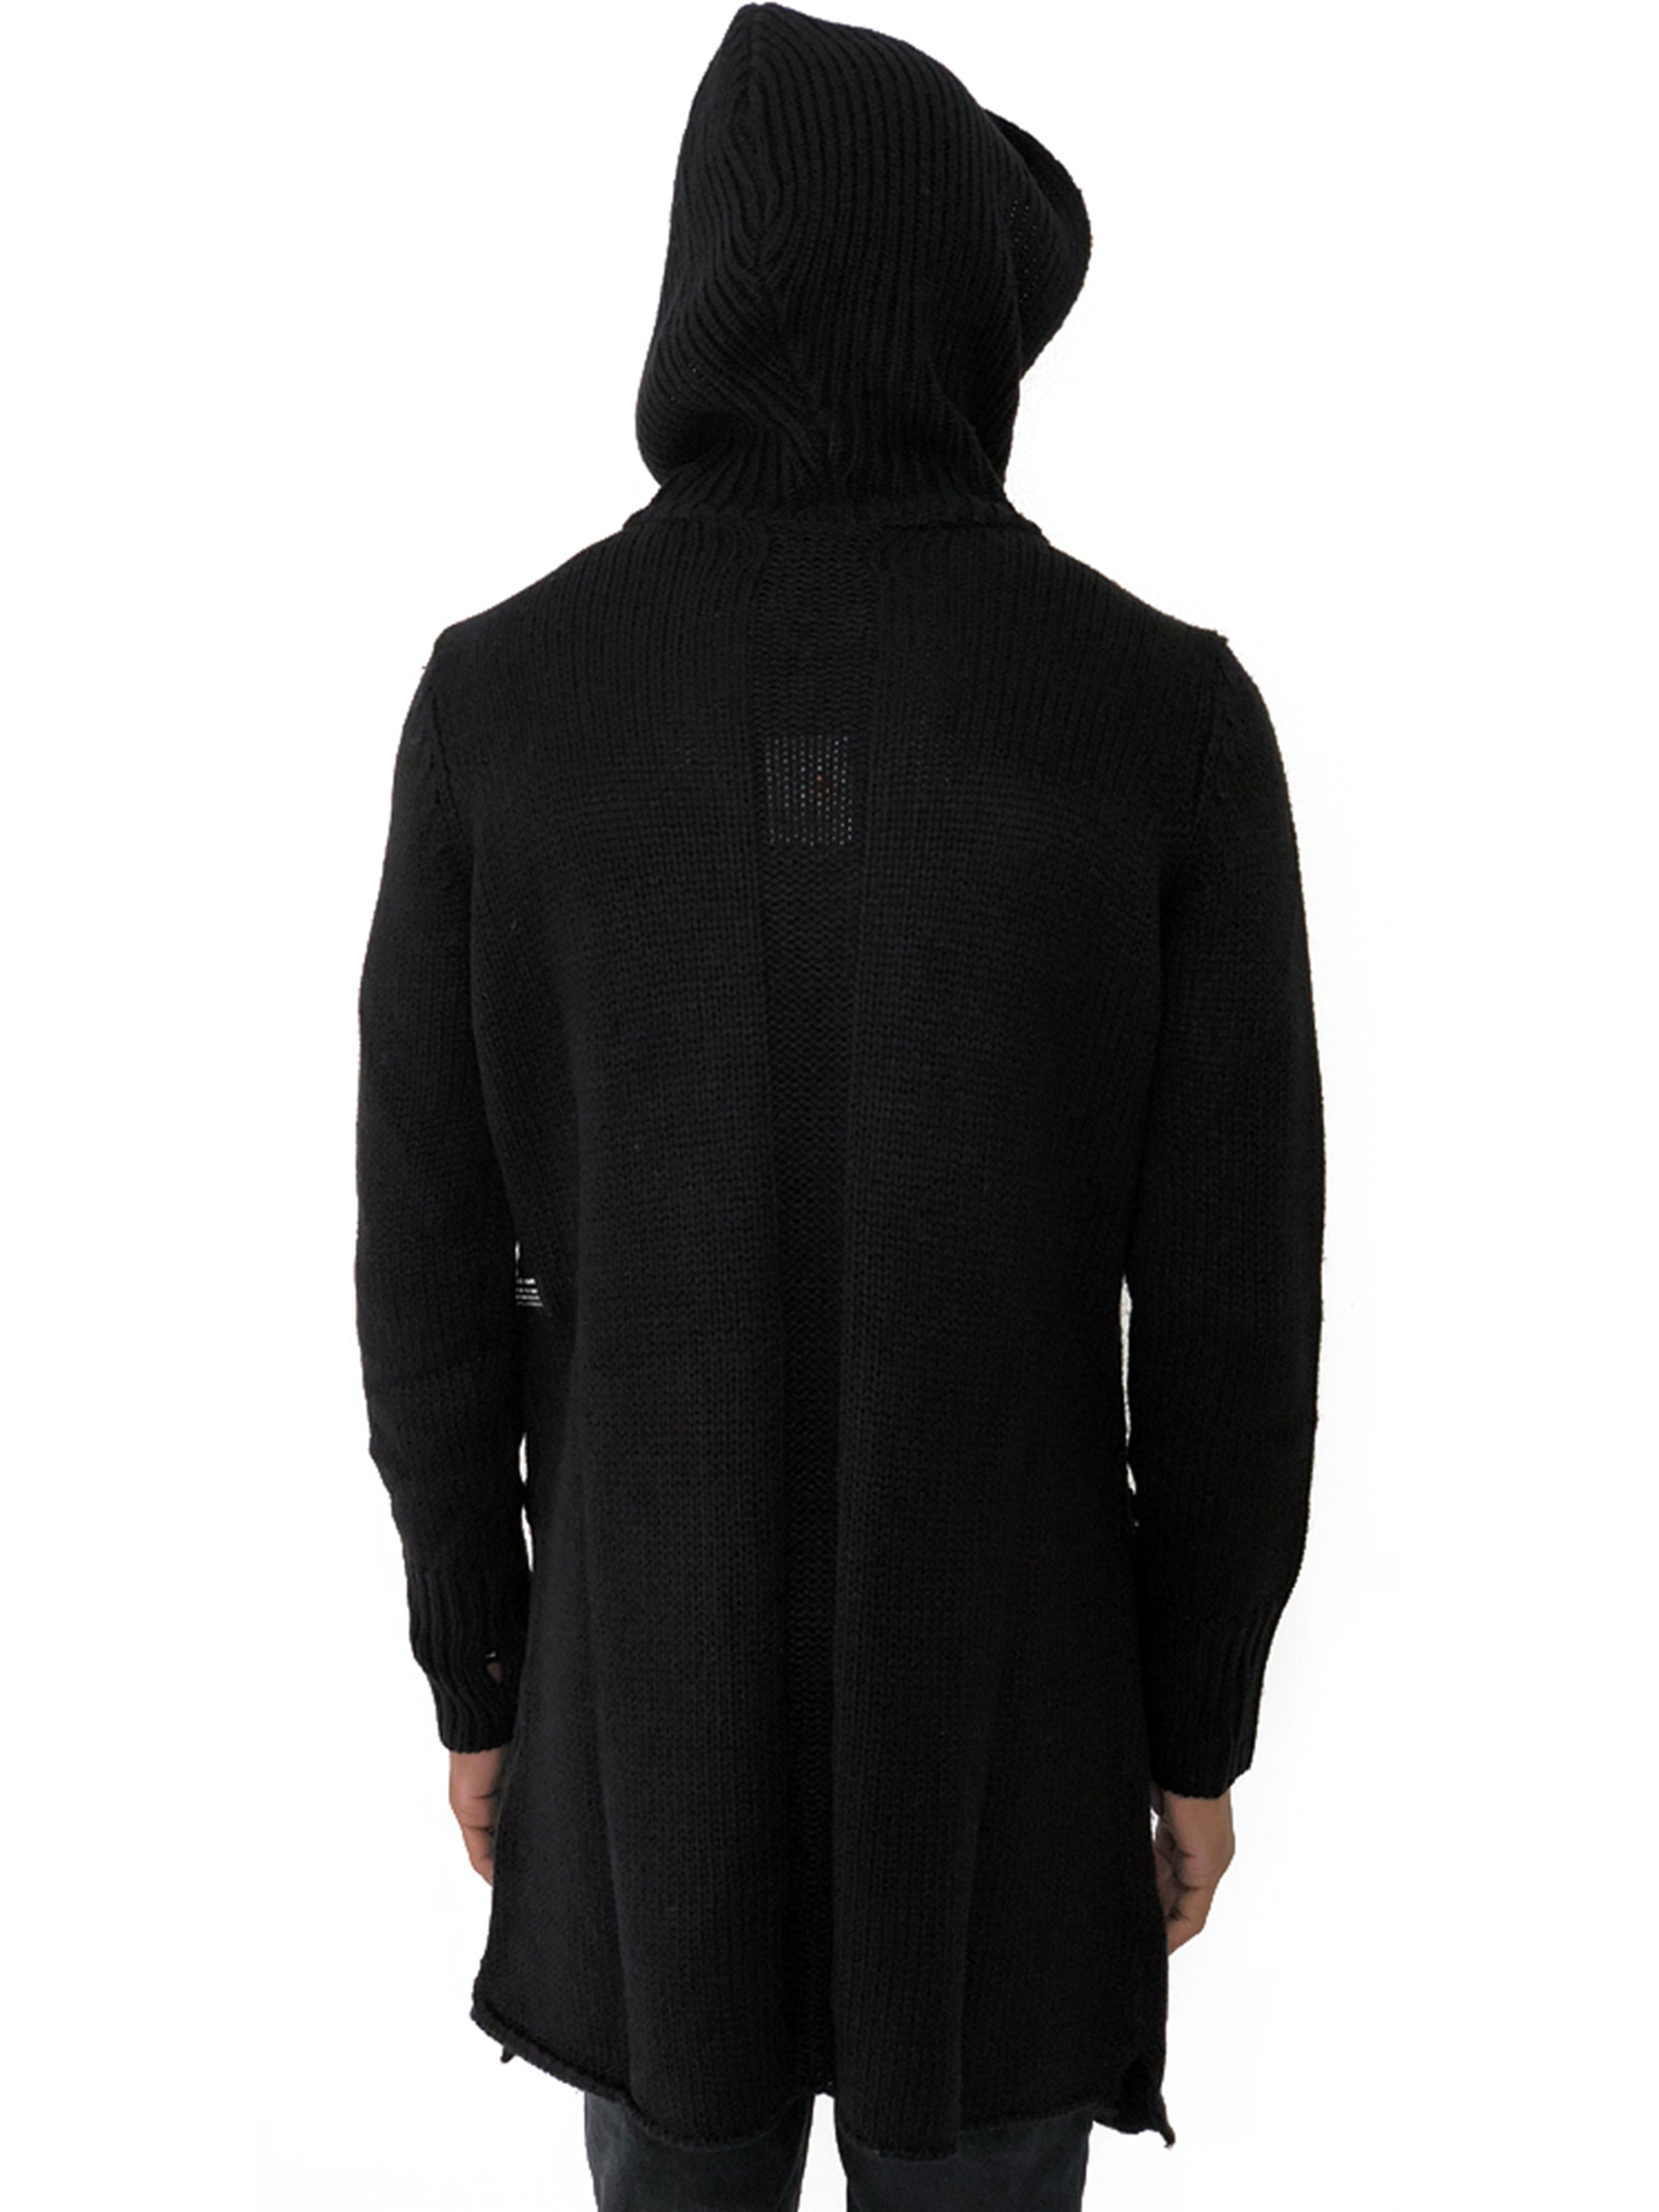 Men Sweater Long Knitted Black Hooded by Ashes To Dust - Brit Boss